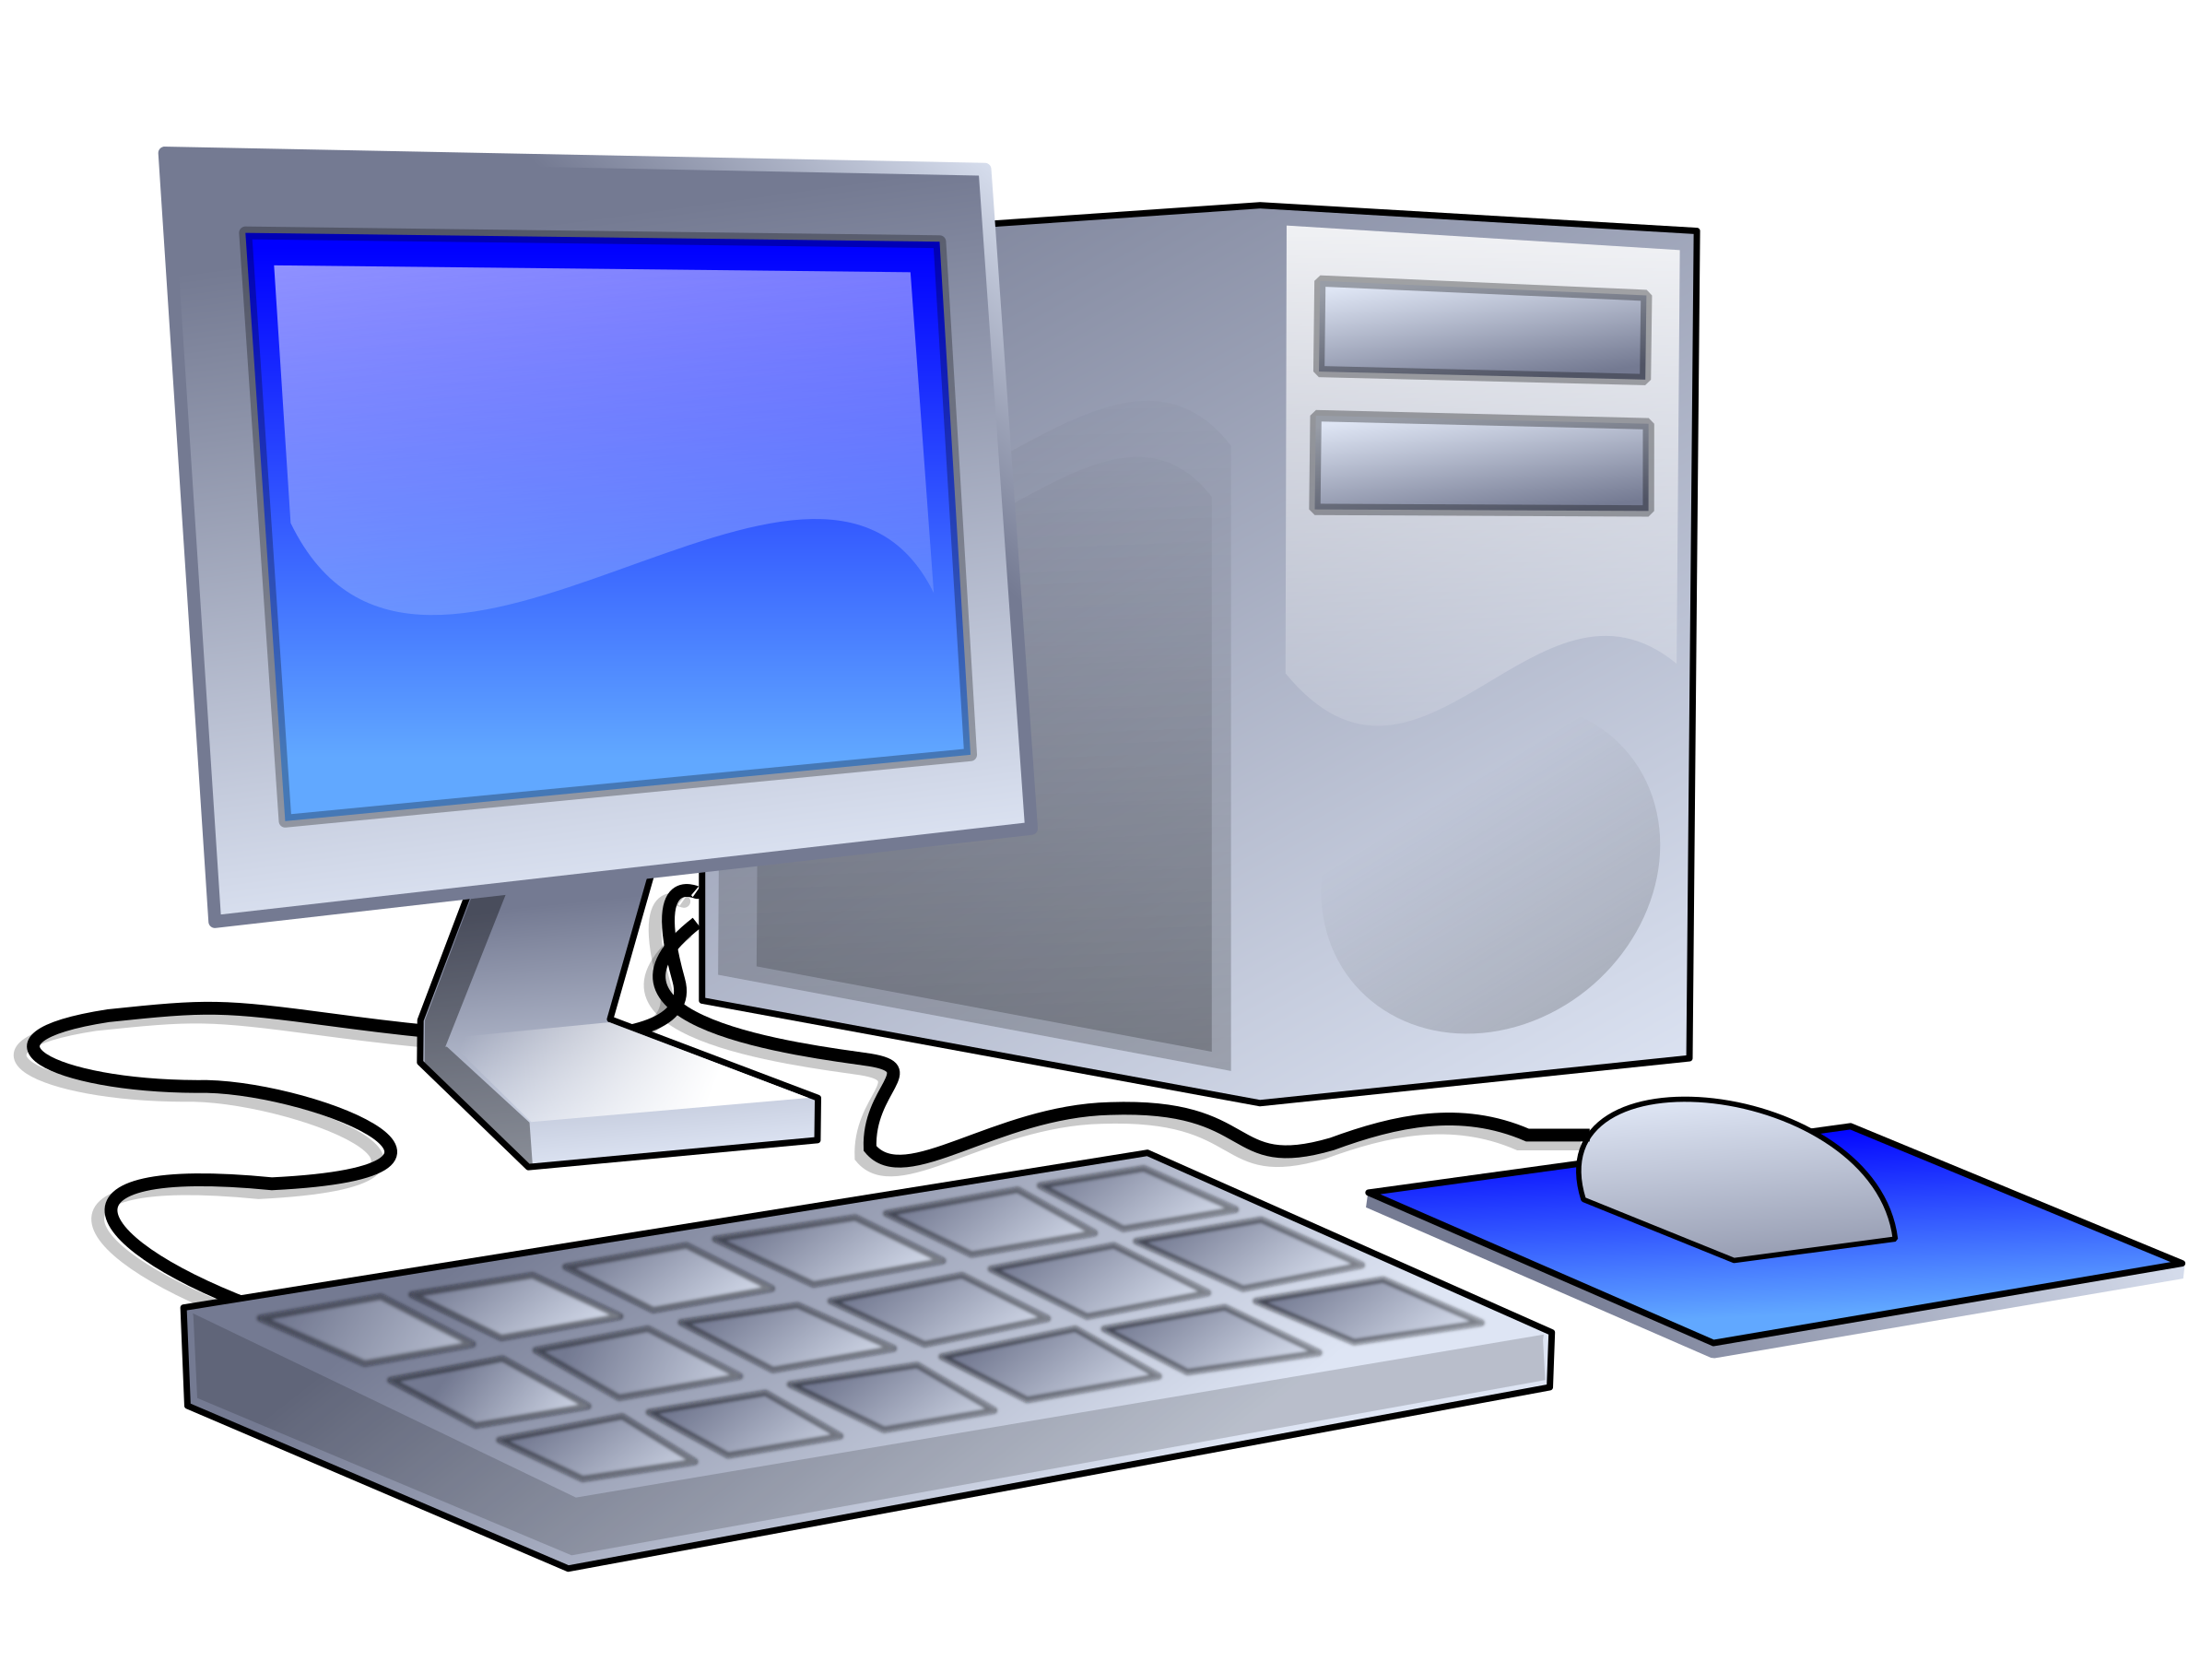 Design clipart computer. Icons png free and